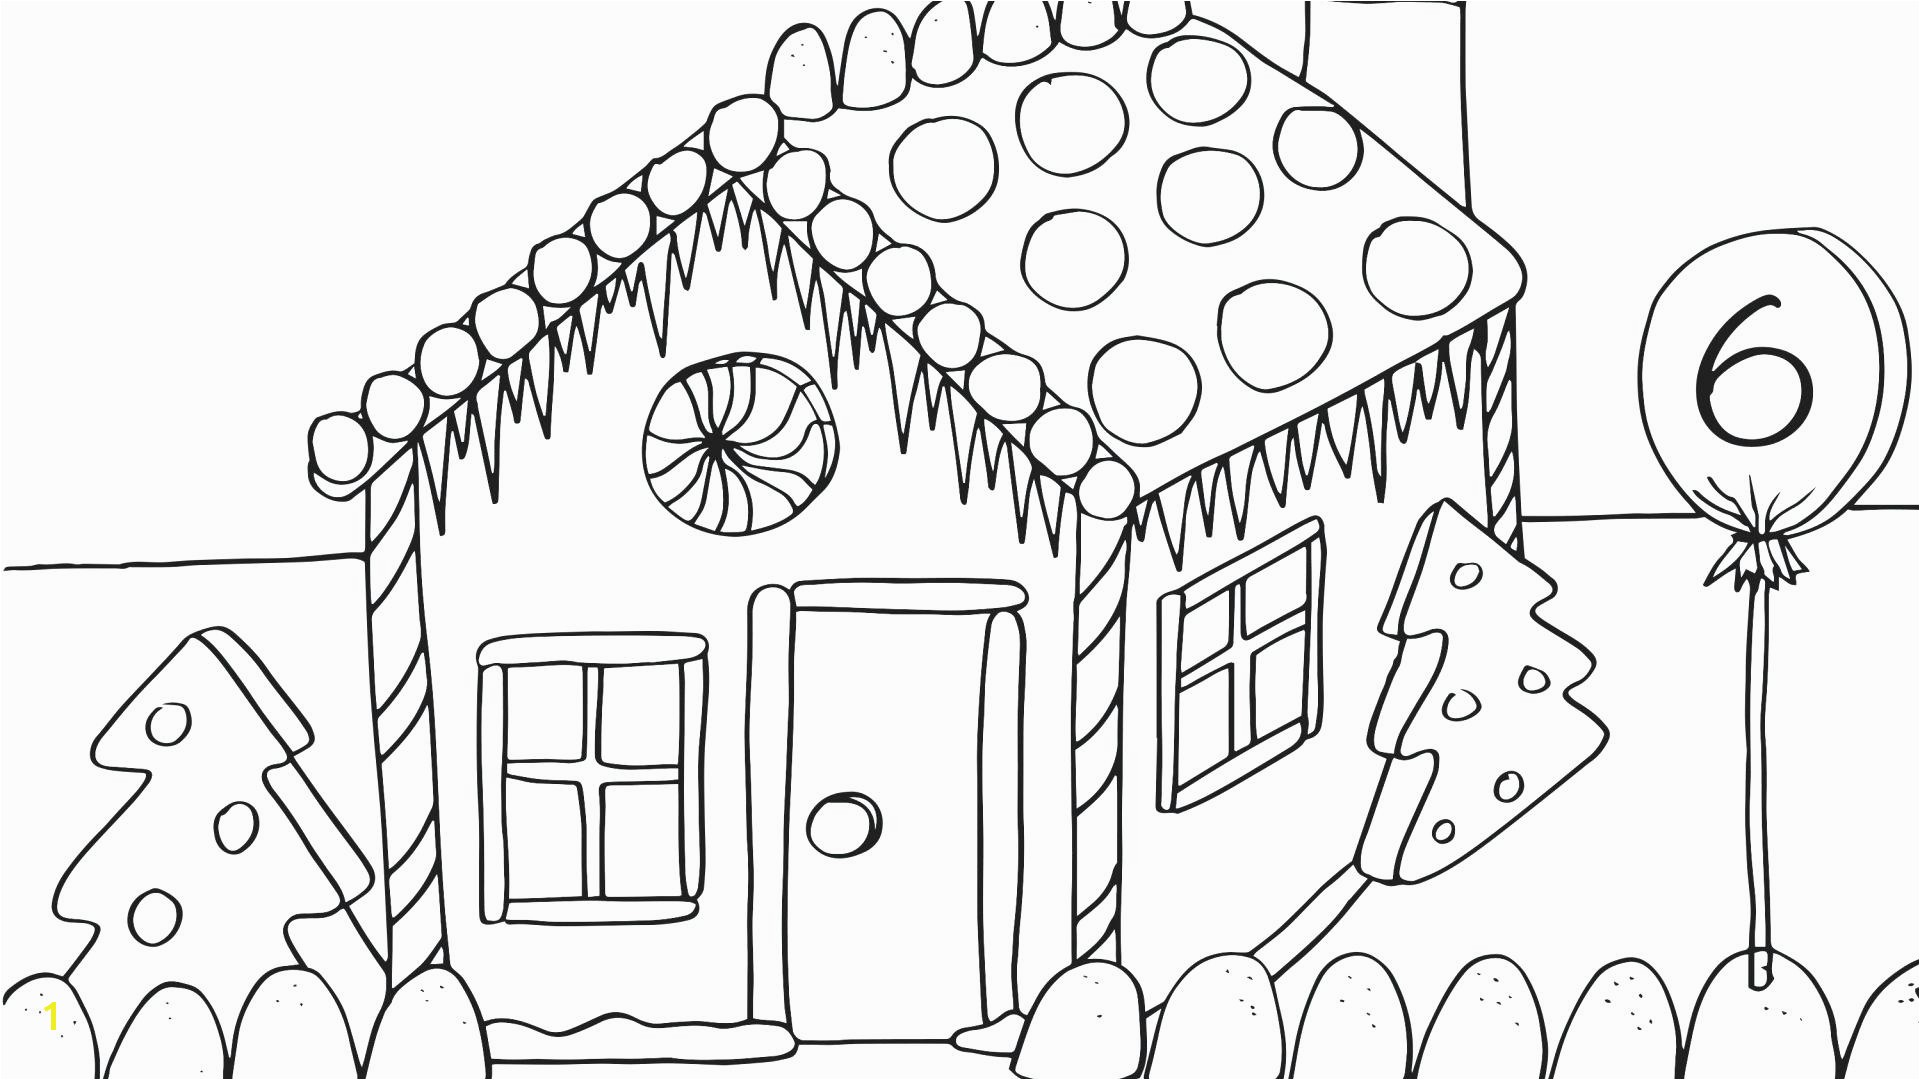 Hansel and Gretel Candy House Coloring Page Nice Gingerbread House Coloring Pages Ensign Coloring Paper